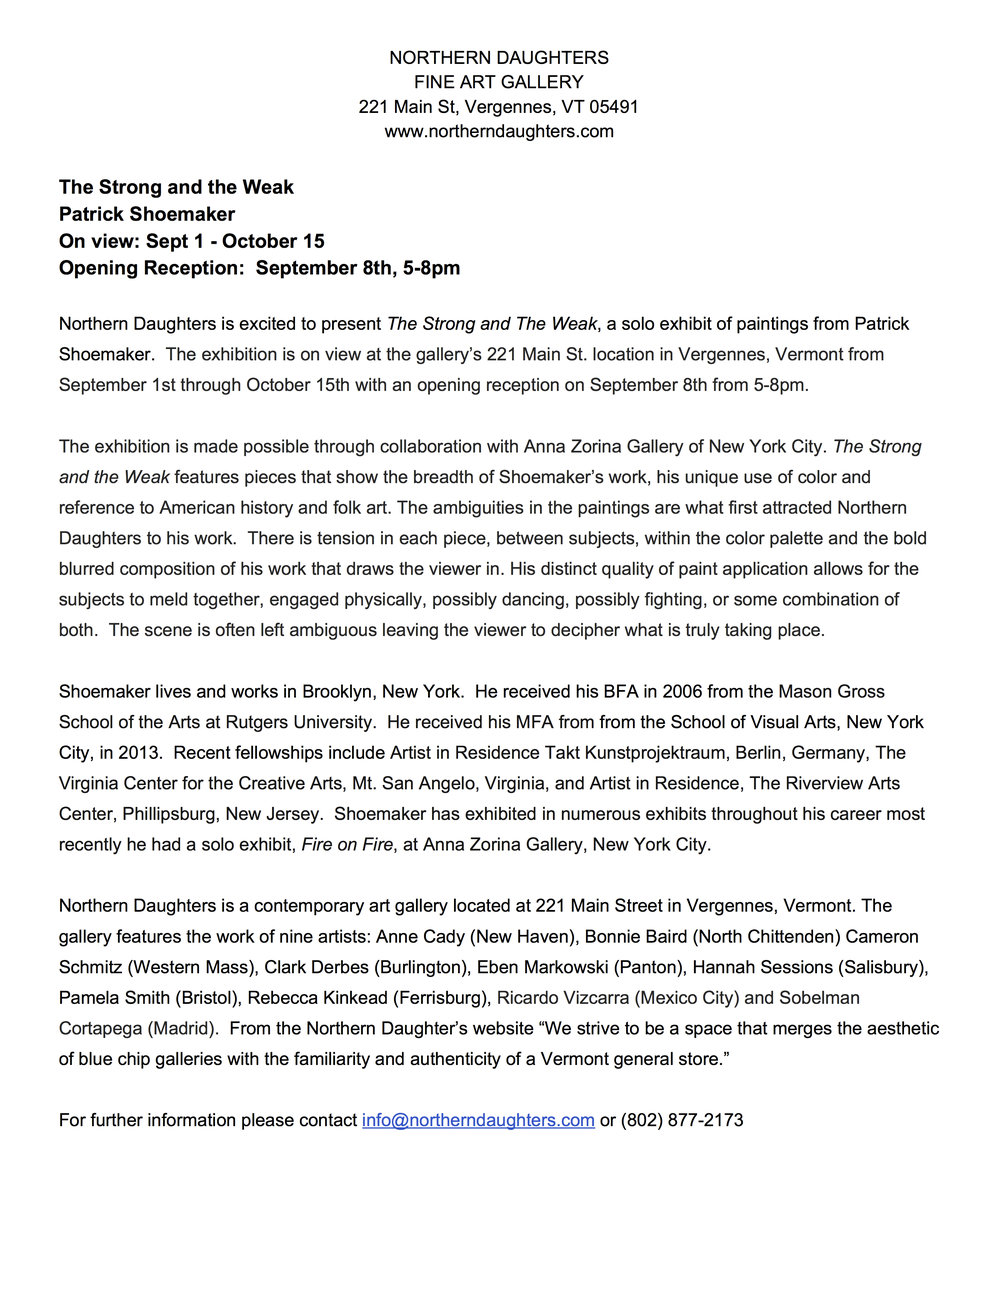 The Strong and the Weak -  Press Release